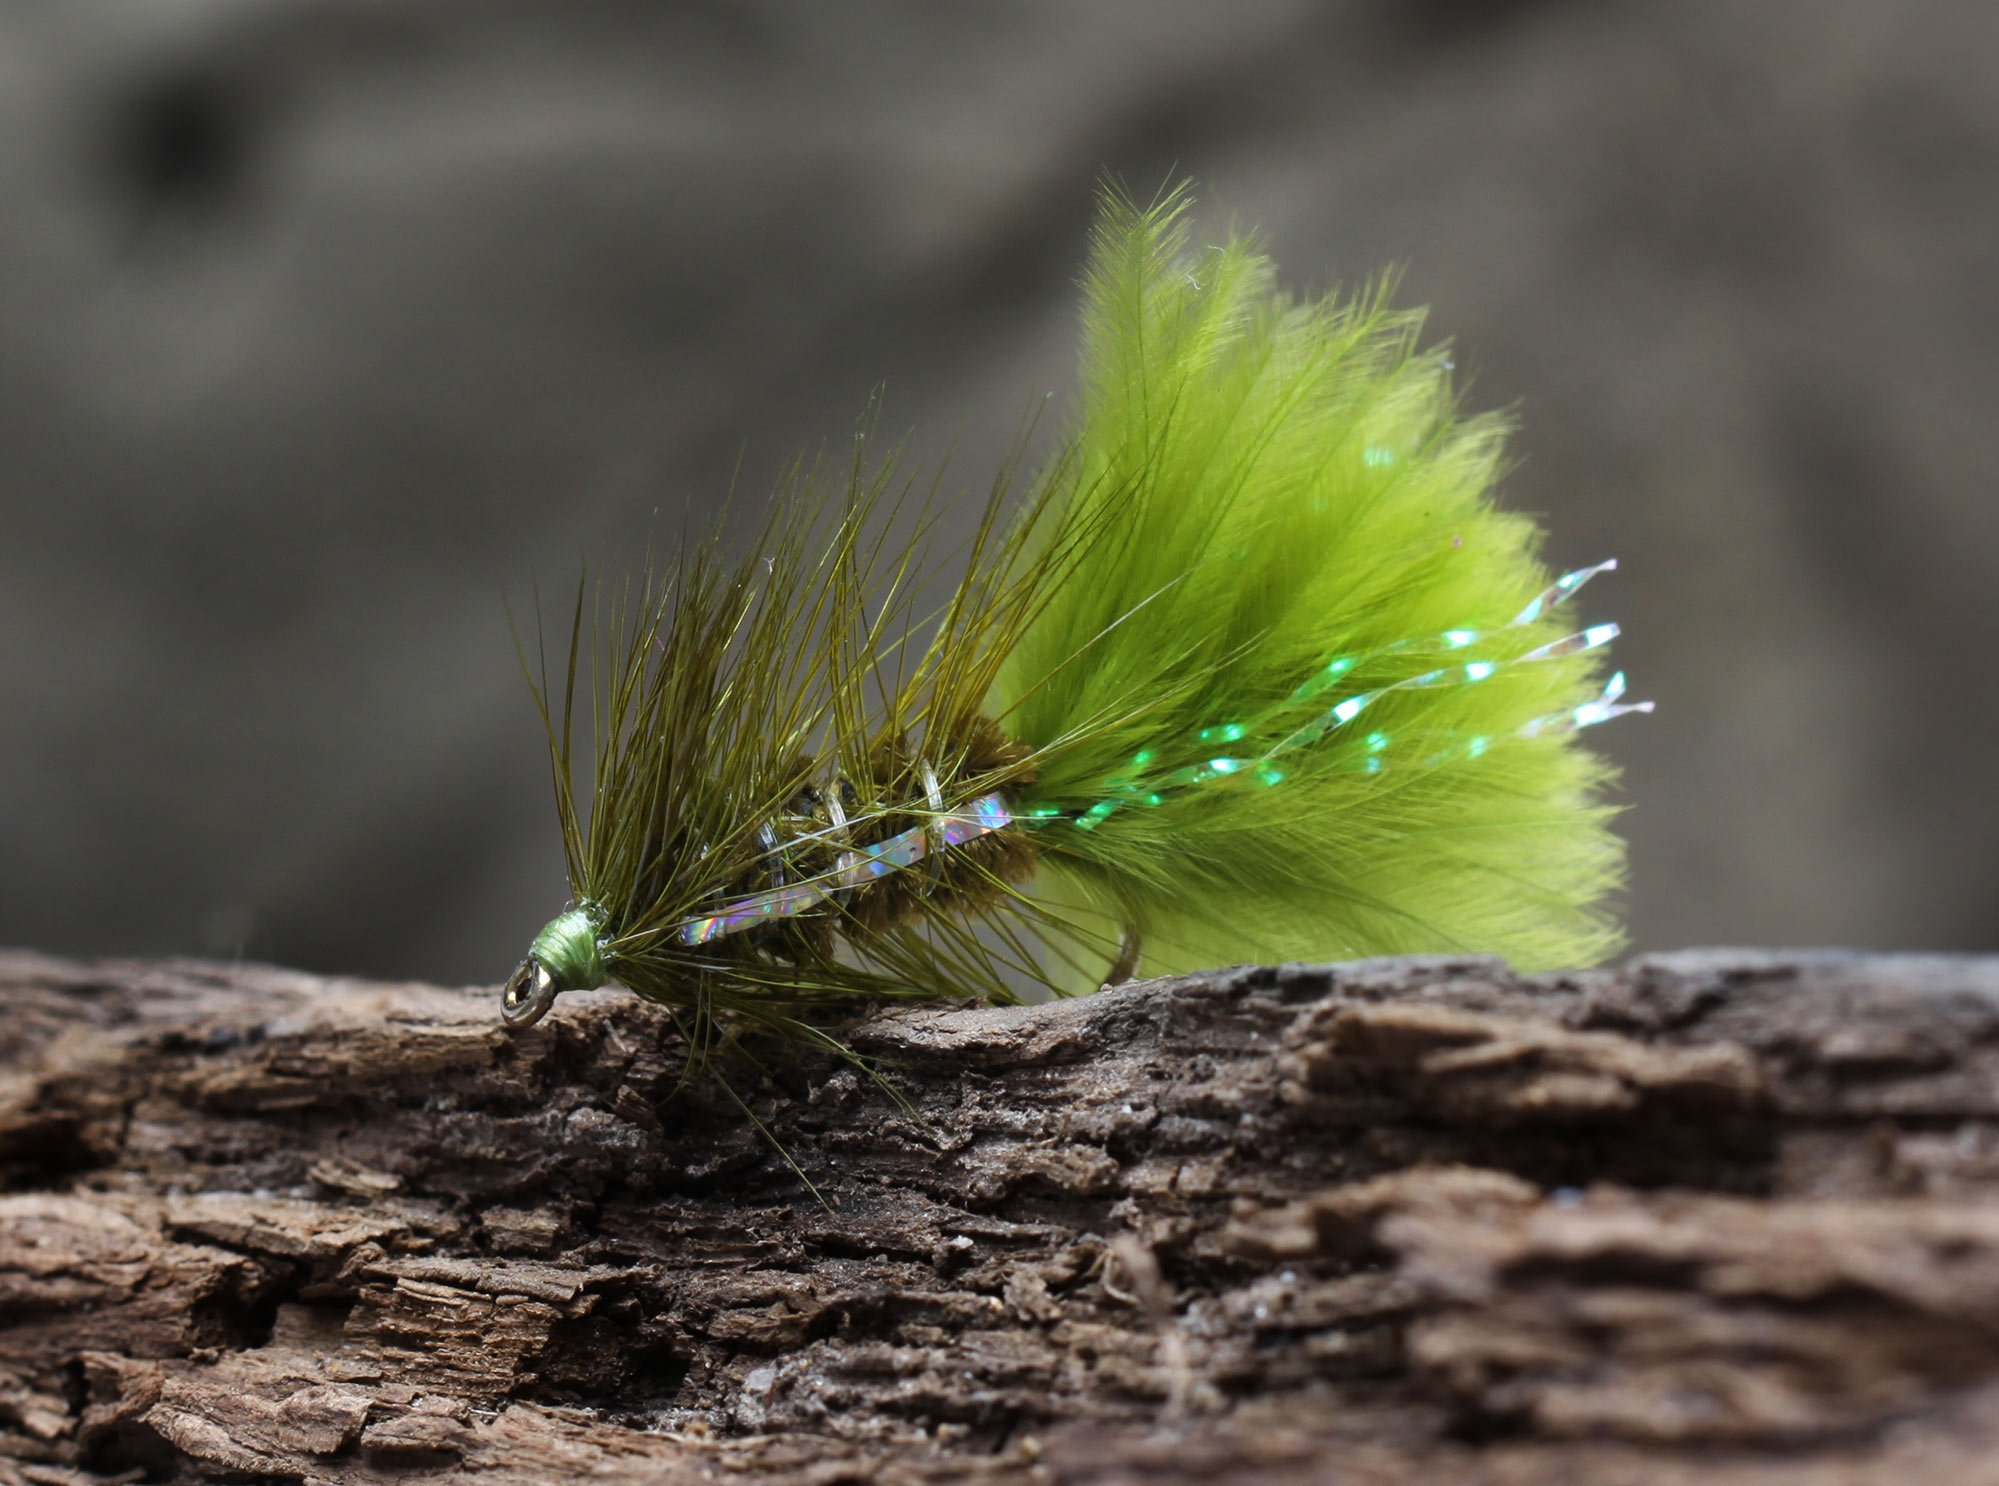 Put & take flue - small dredger olive/chartreuse thumbnail